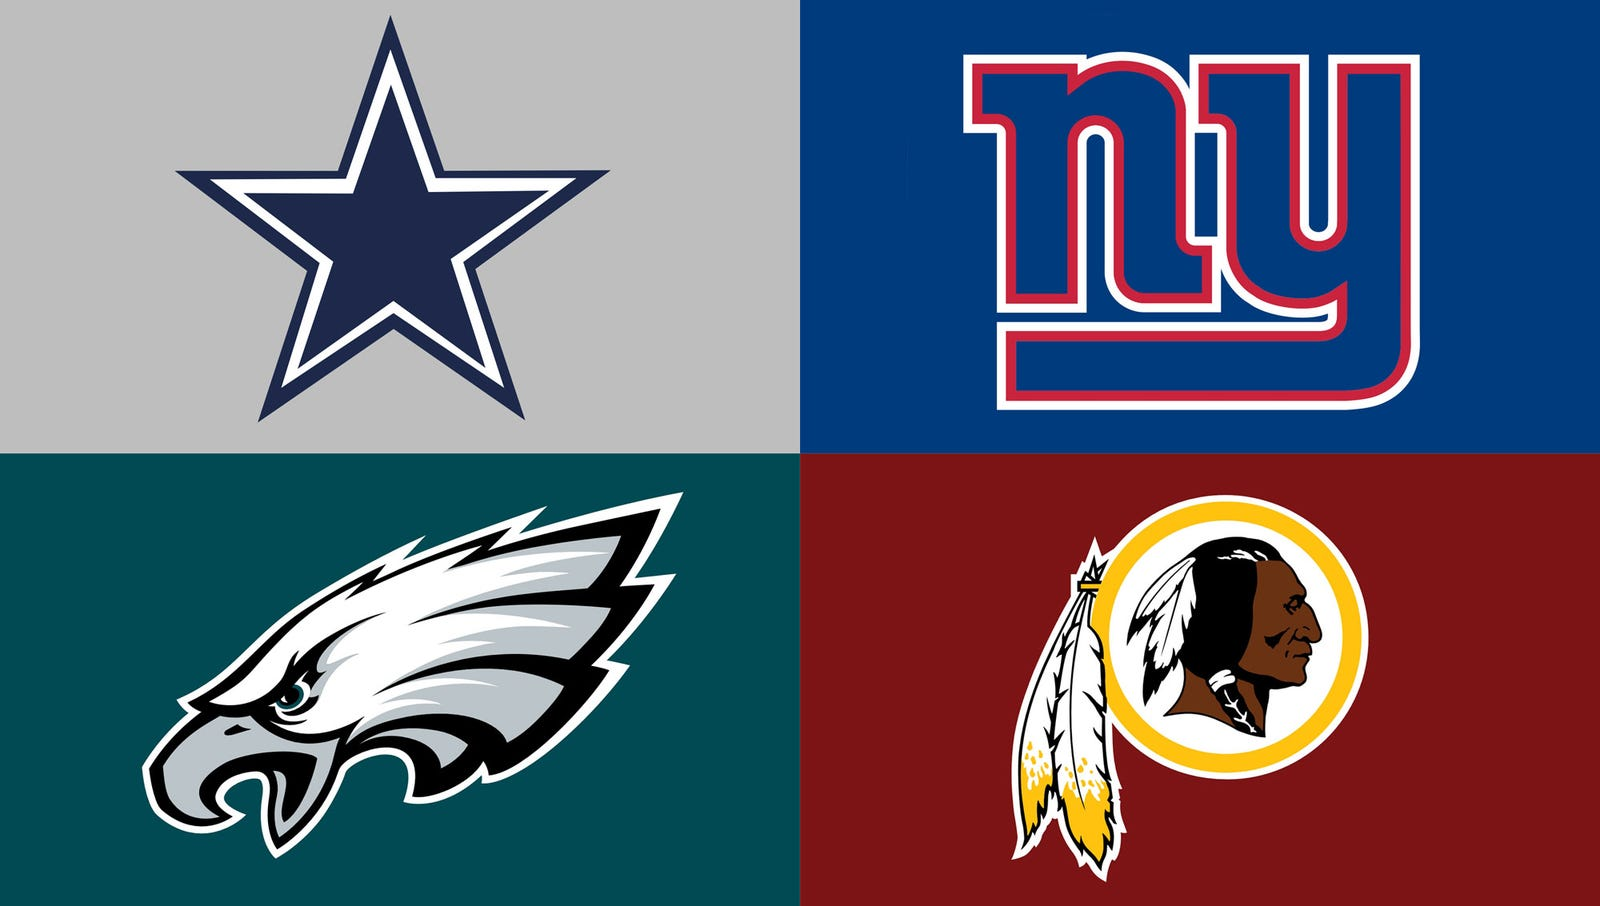 With the 2014 NFL season kicking off this week, Onion Sports has in-depth analysis on each team in the NFC East.